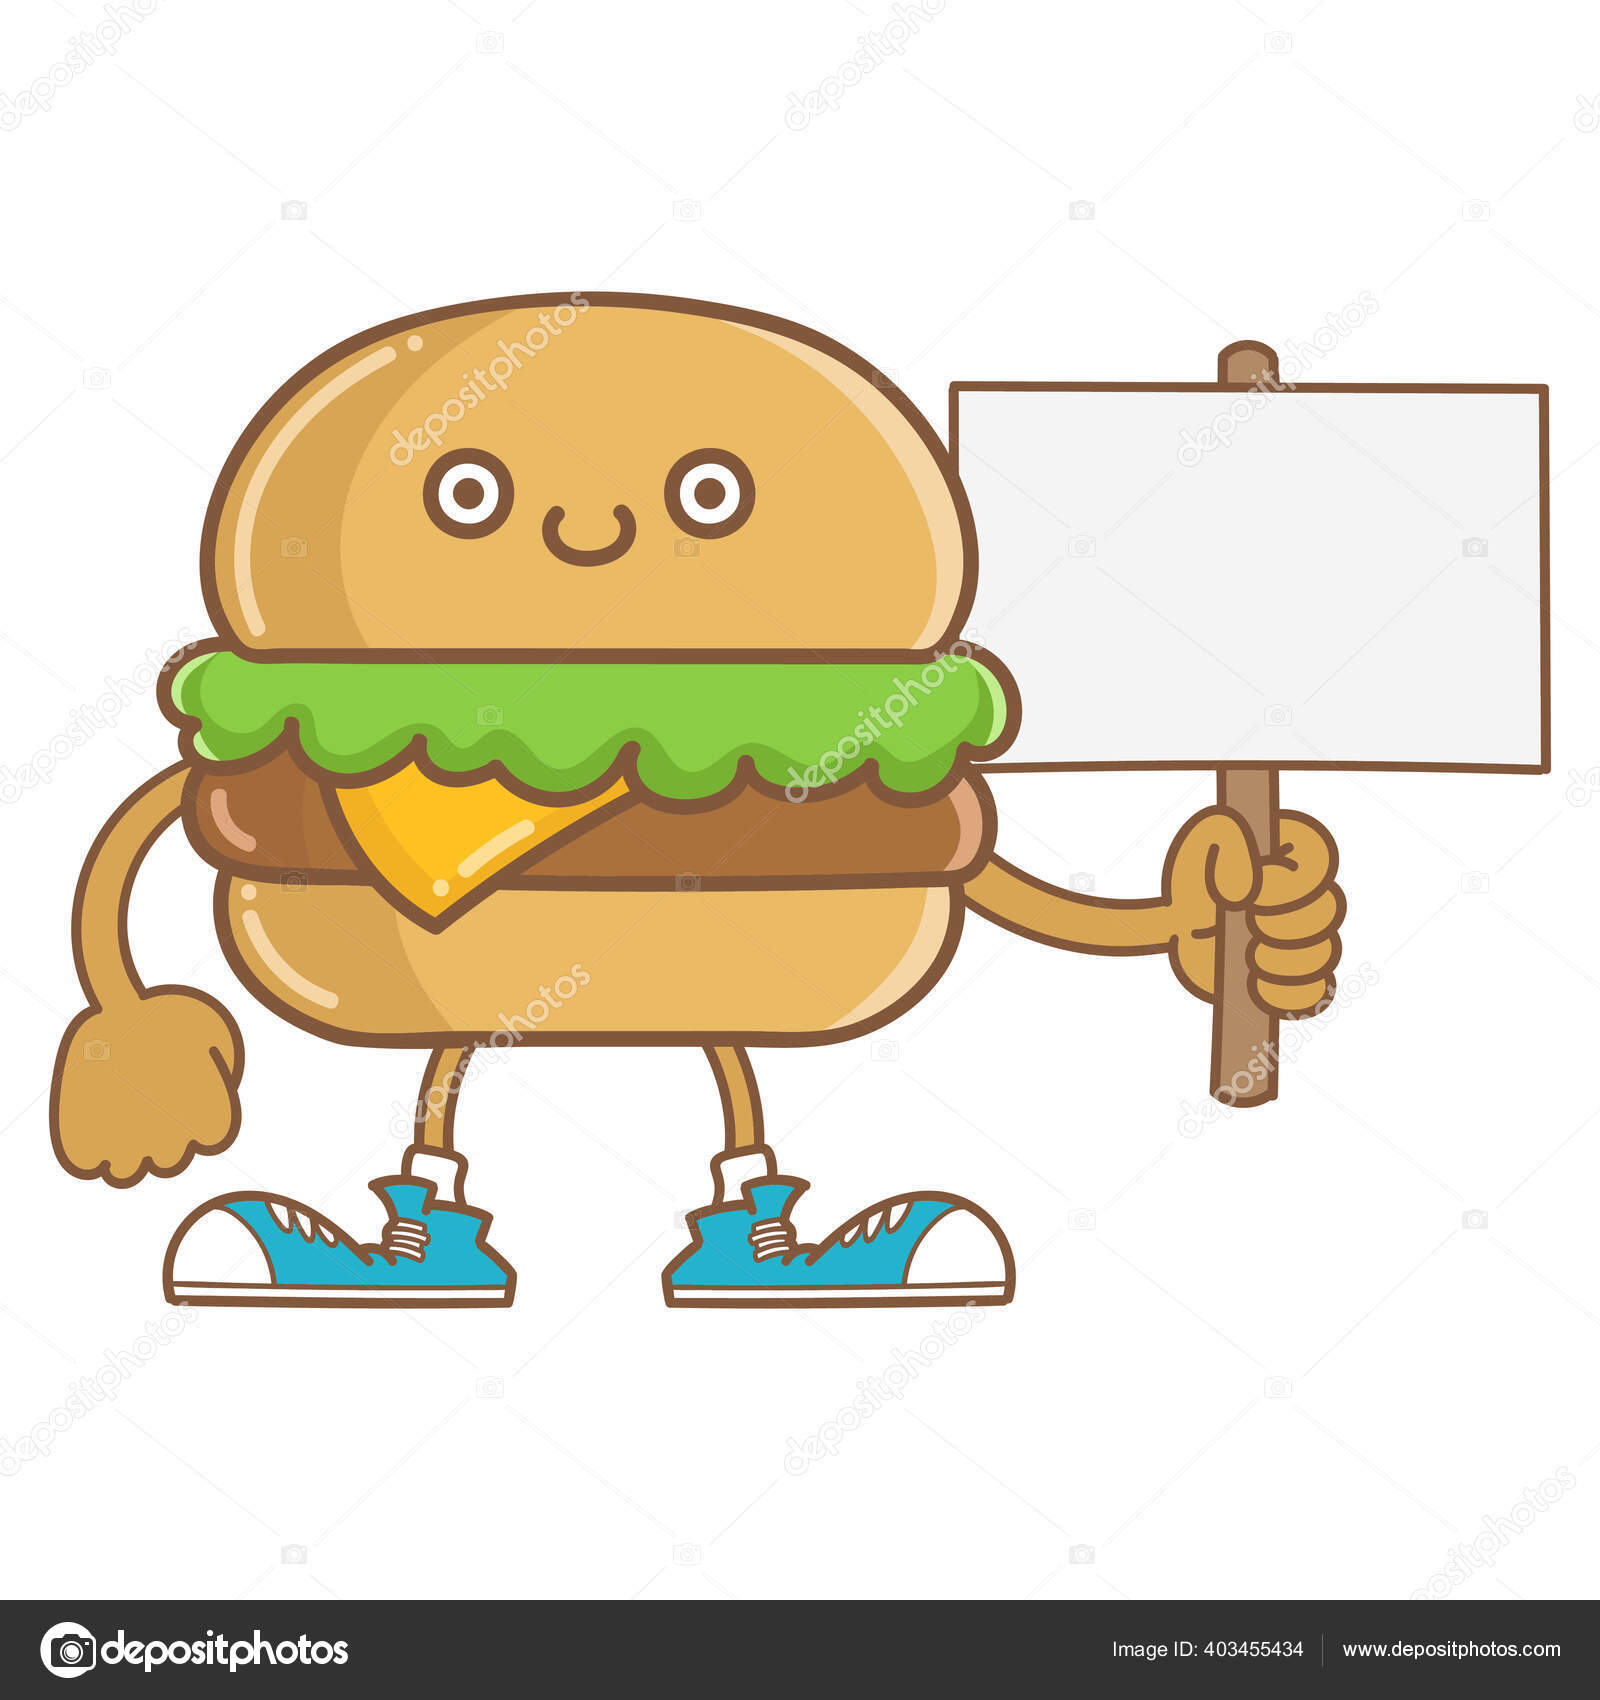 Kawaii Sourire Fromage Hamburger Icone Dessin Anime Isole Sur Fond Image Vectorielle Mictoon C 403455434